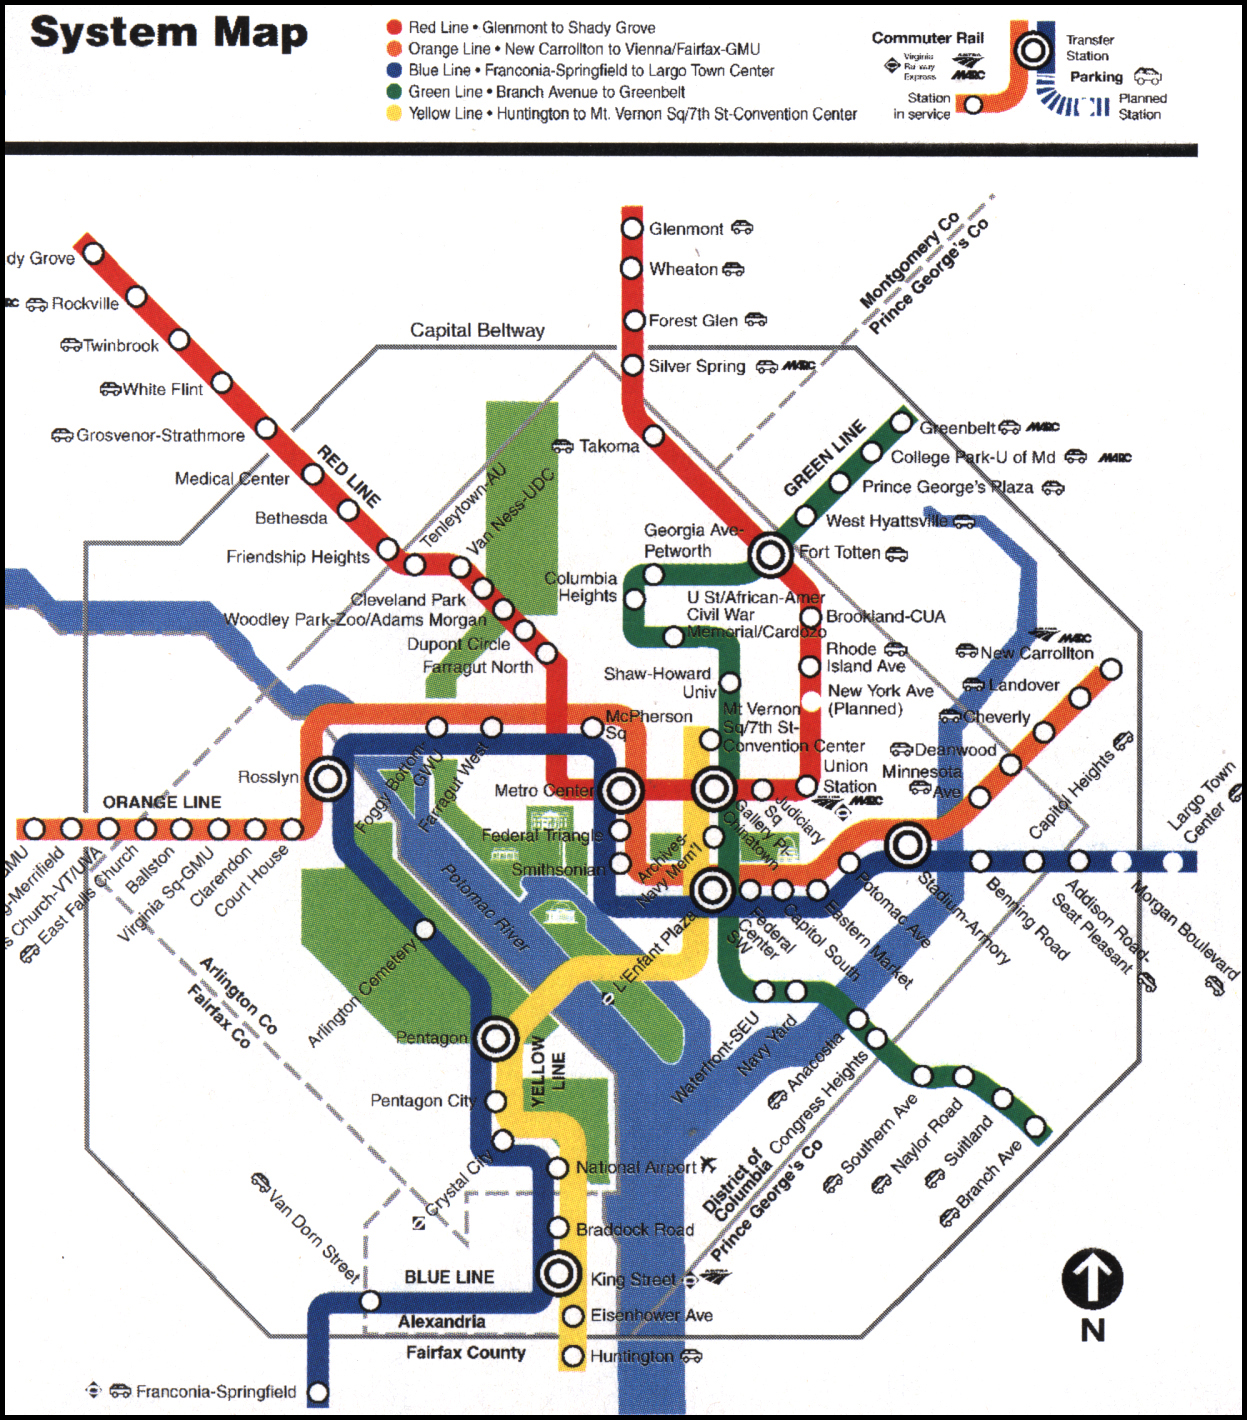 Us Map Washington Dc Washington Dc Map Home The Old Print Gallery - Washington dc map with metro stations